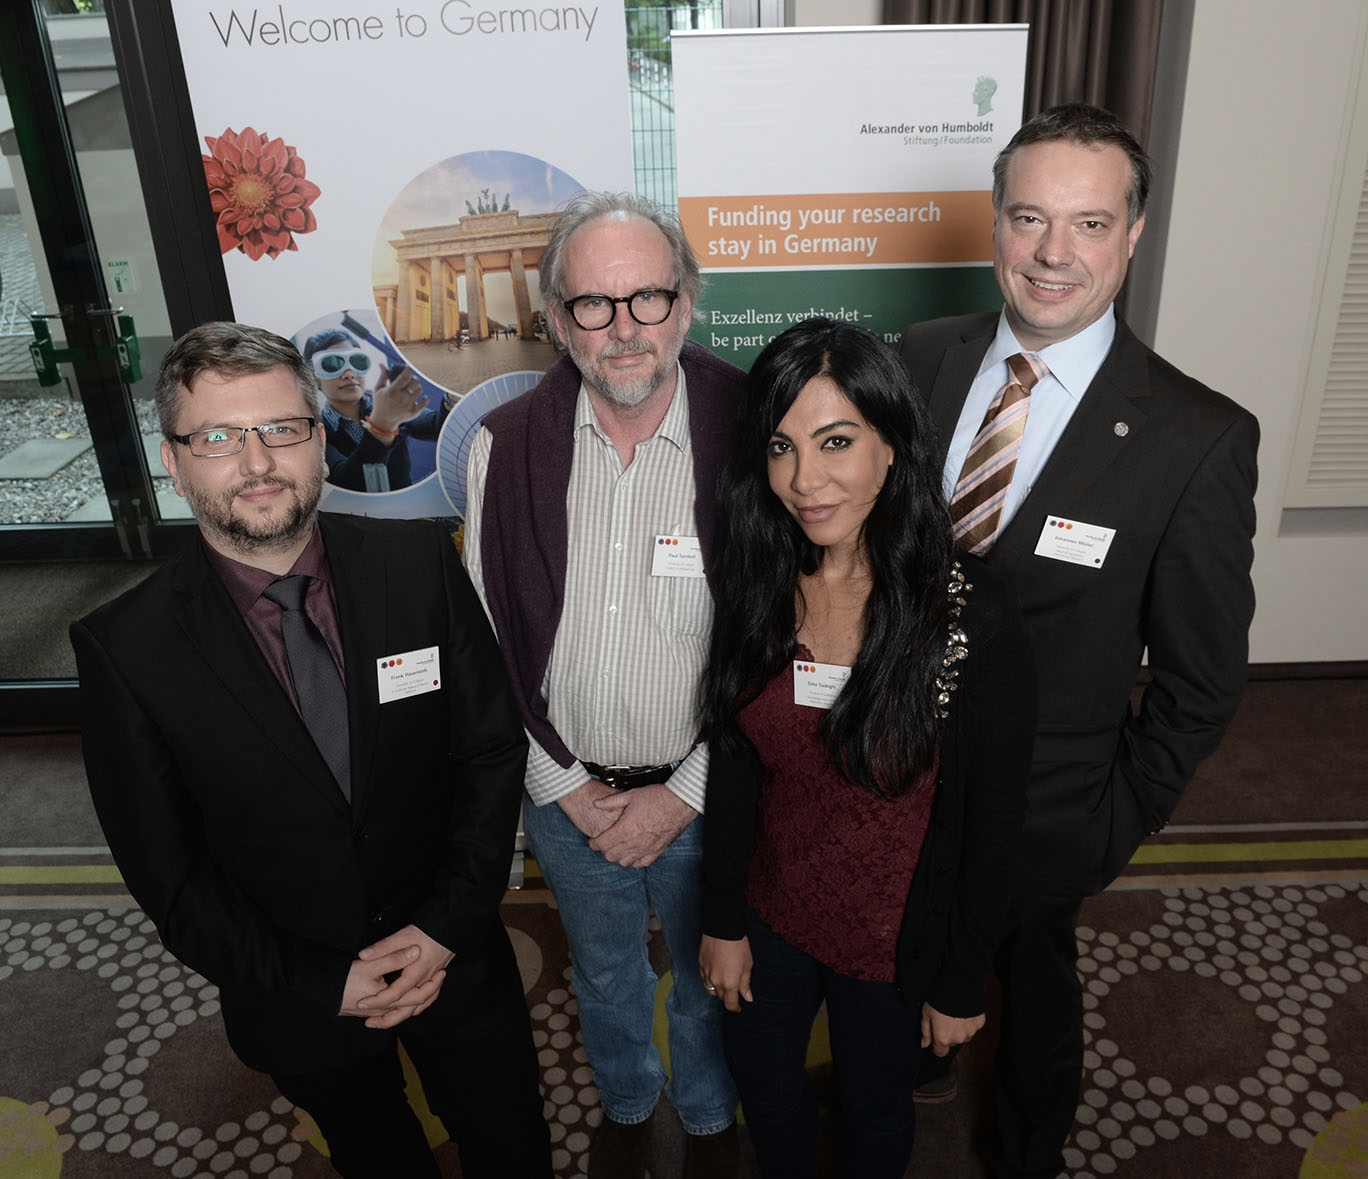 Prof. Dr. Paul Turnbull (2nd from the left) and Dr. Sima Sadeghi (2nd from the right) attended the conference as international researchers at the University of Cologne accompanied by Dr. Johannes Müller (on the right) and Frank Hasenstab (on the left) from Albert's Global Researcher Network. Photo: Alexander von Humboldt Foundation / Ausserhofer